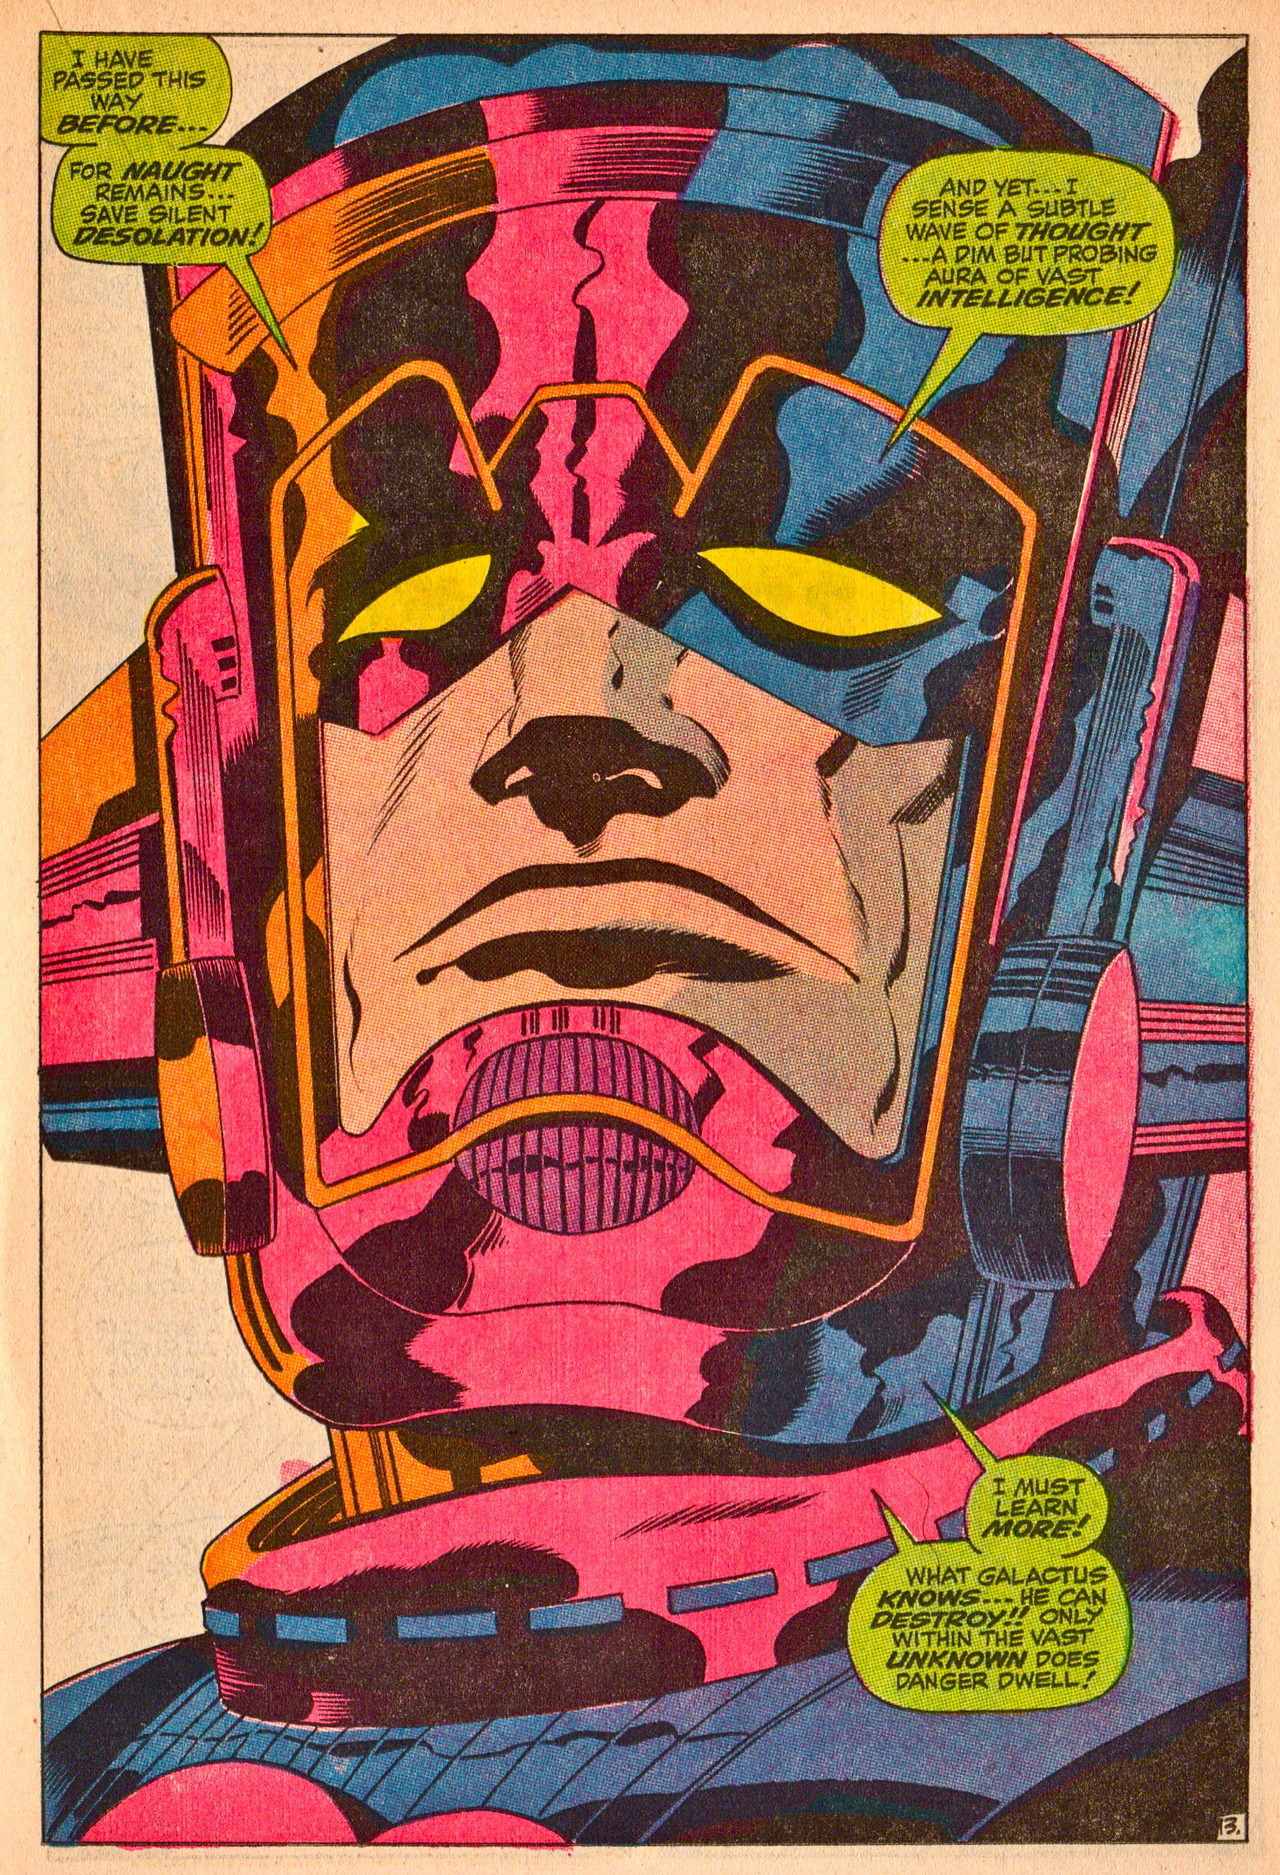 Jack Kirby, The King Of Comics, Would Have Been 95 Today HAPPY BIRTHDAY JACK KIRBY! The legendary King of Comics! He co-created many characters I am lucky to write in THE ULTIMATES, including Captain America, Iron Man, Thor, and the Hulk…among many, many more. THANK YOU KING! FOREVER IN AWE! LOVE, SHUMPHRIES